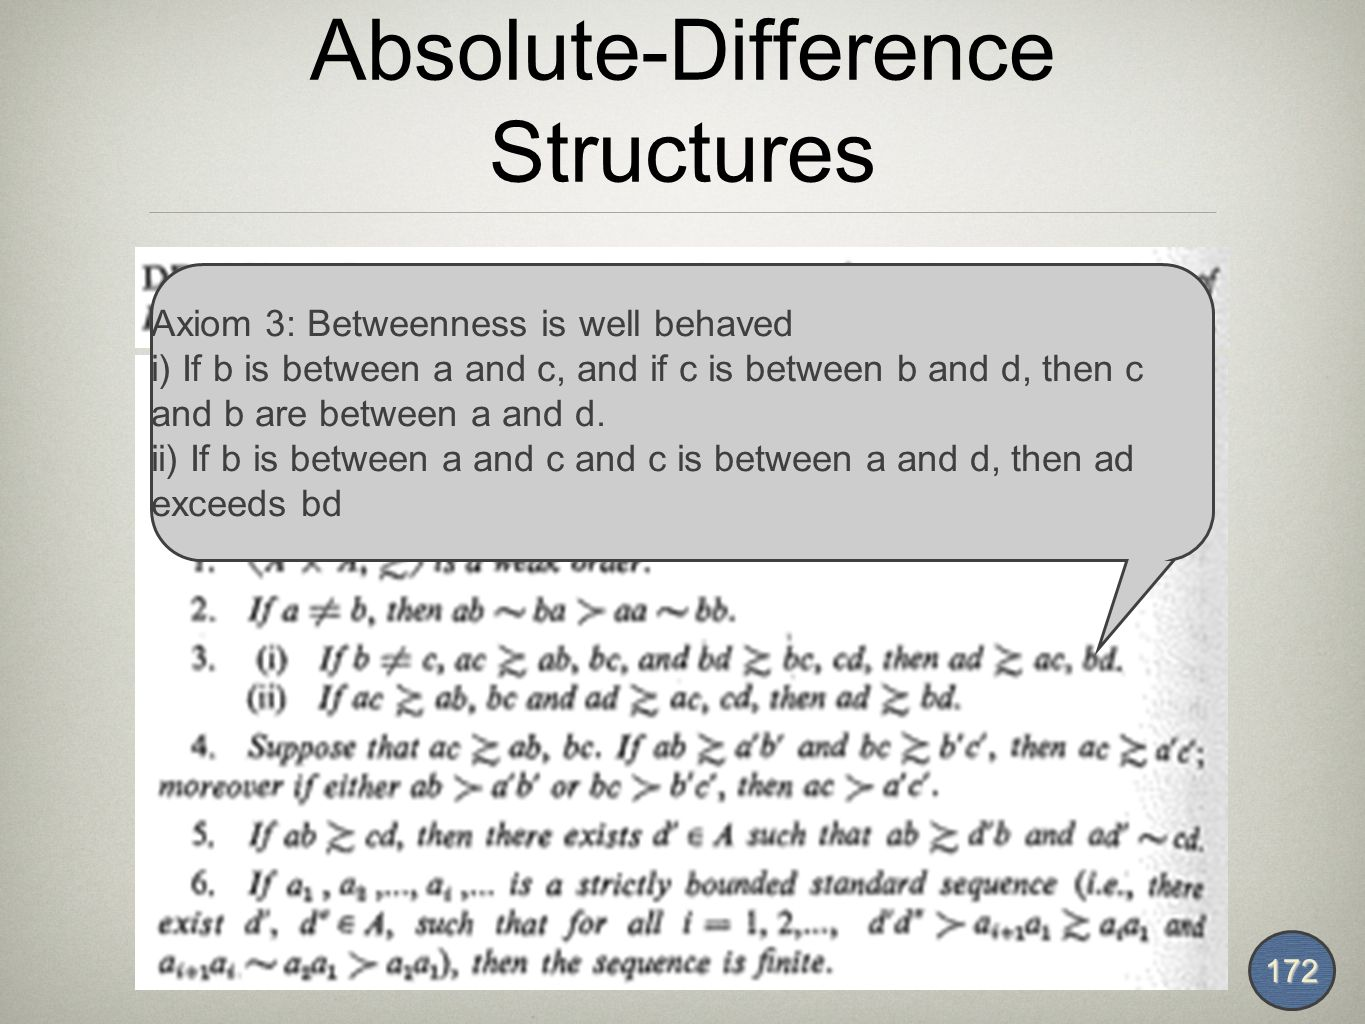 Absolute-Difference Structures 172 Axiom 3: Betweenness is well behaved i) If b is between a and c, and if c is between b and d, then c and b are between a and d.